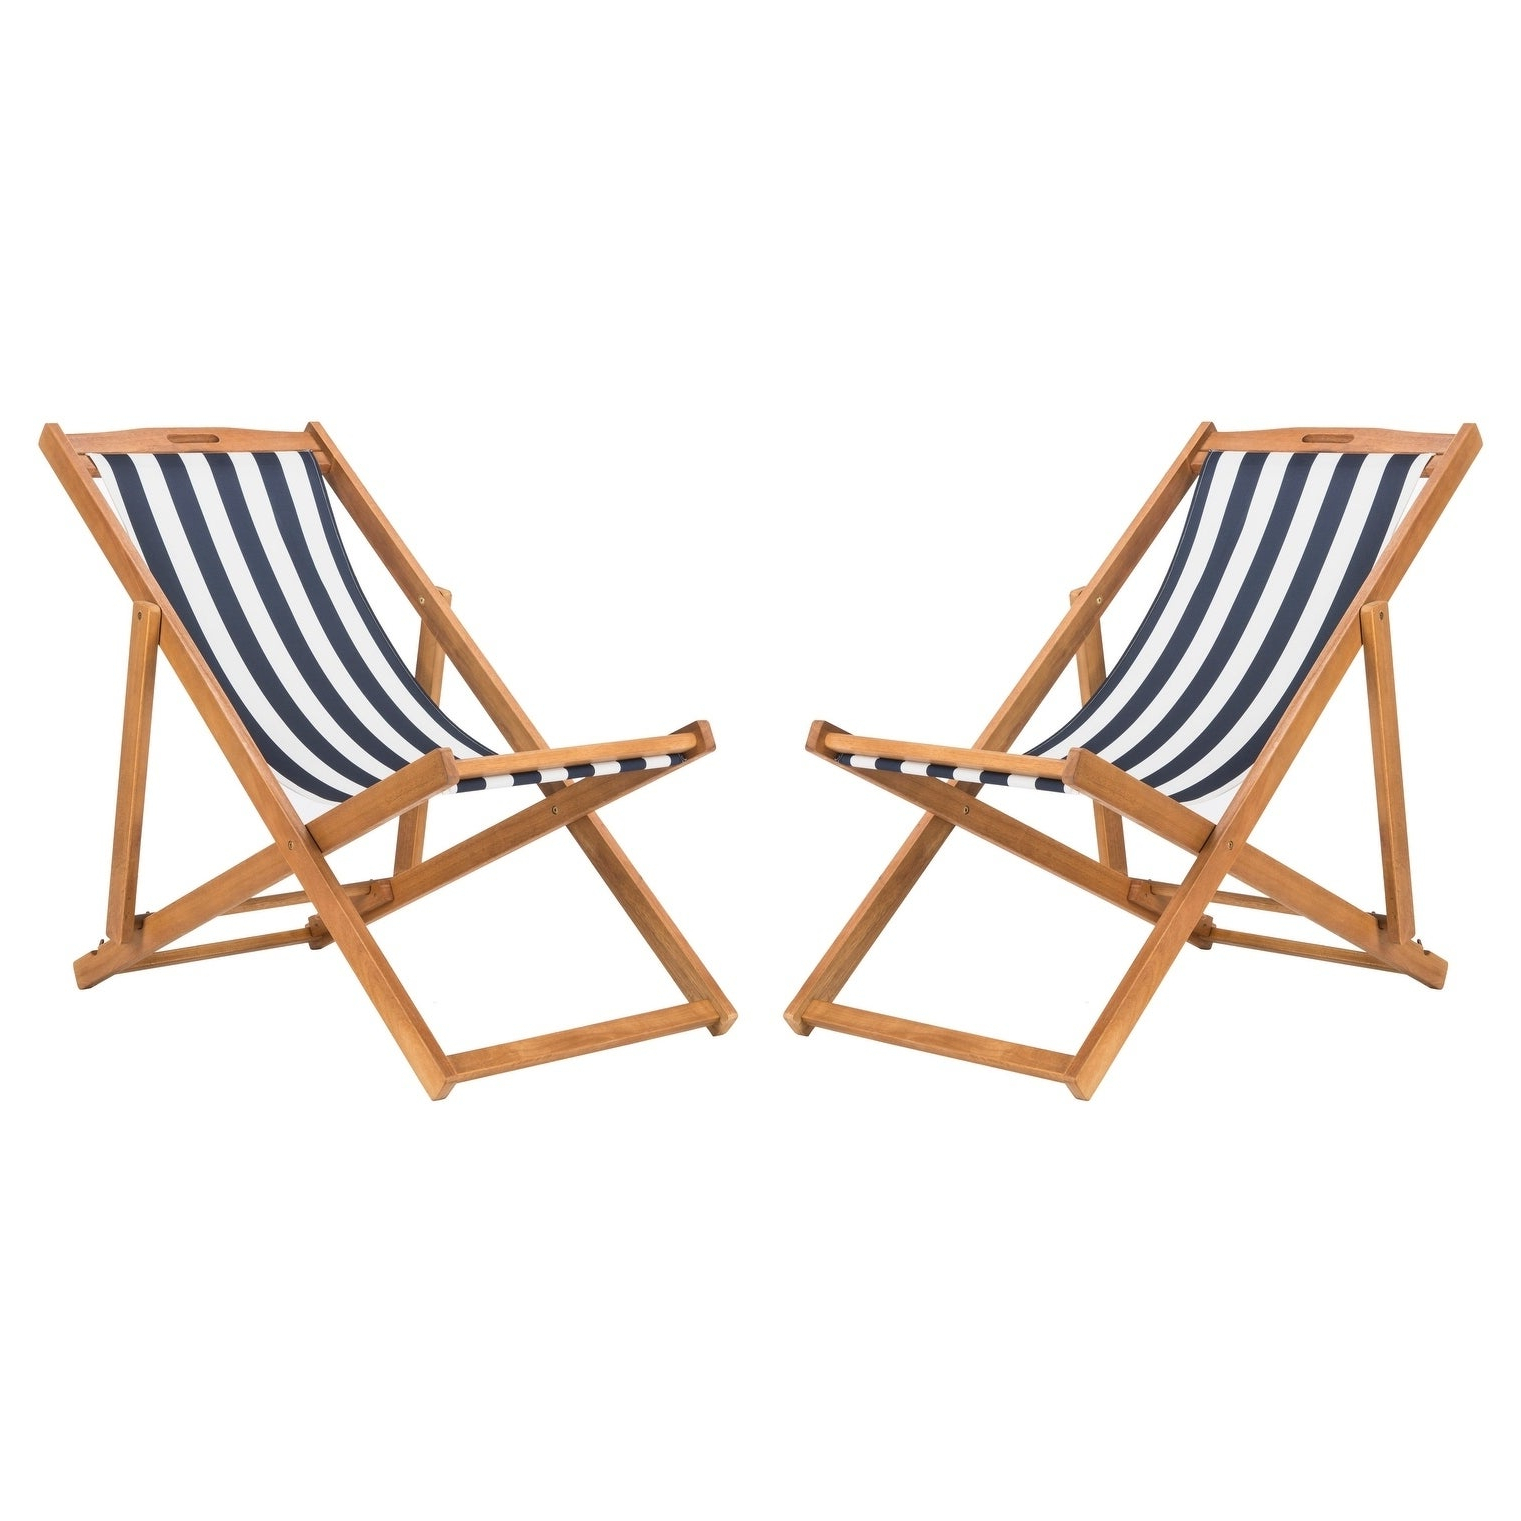 Safavieh Outdoor Living Loren Foldable Sling Chair – Navy / White (Set Of 2) Throughout Favorite Outdoor Wood Sling Chairs (View 7 of 25)